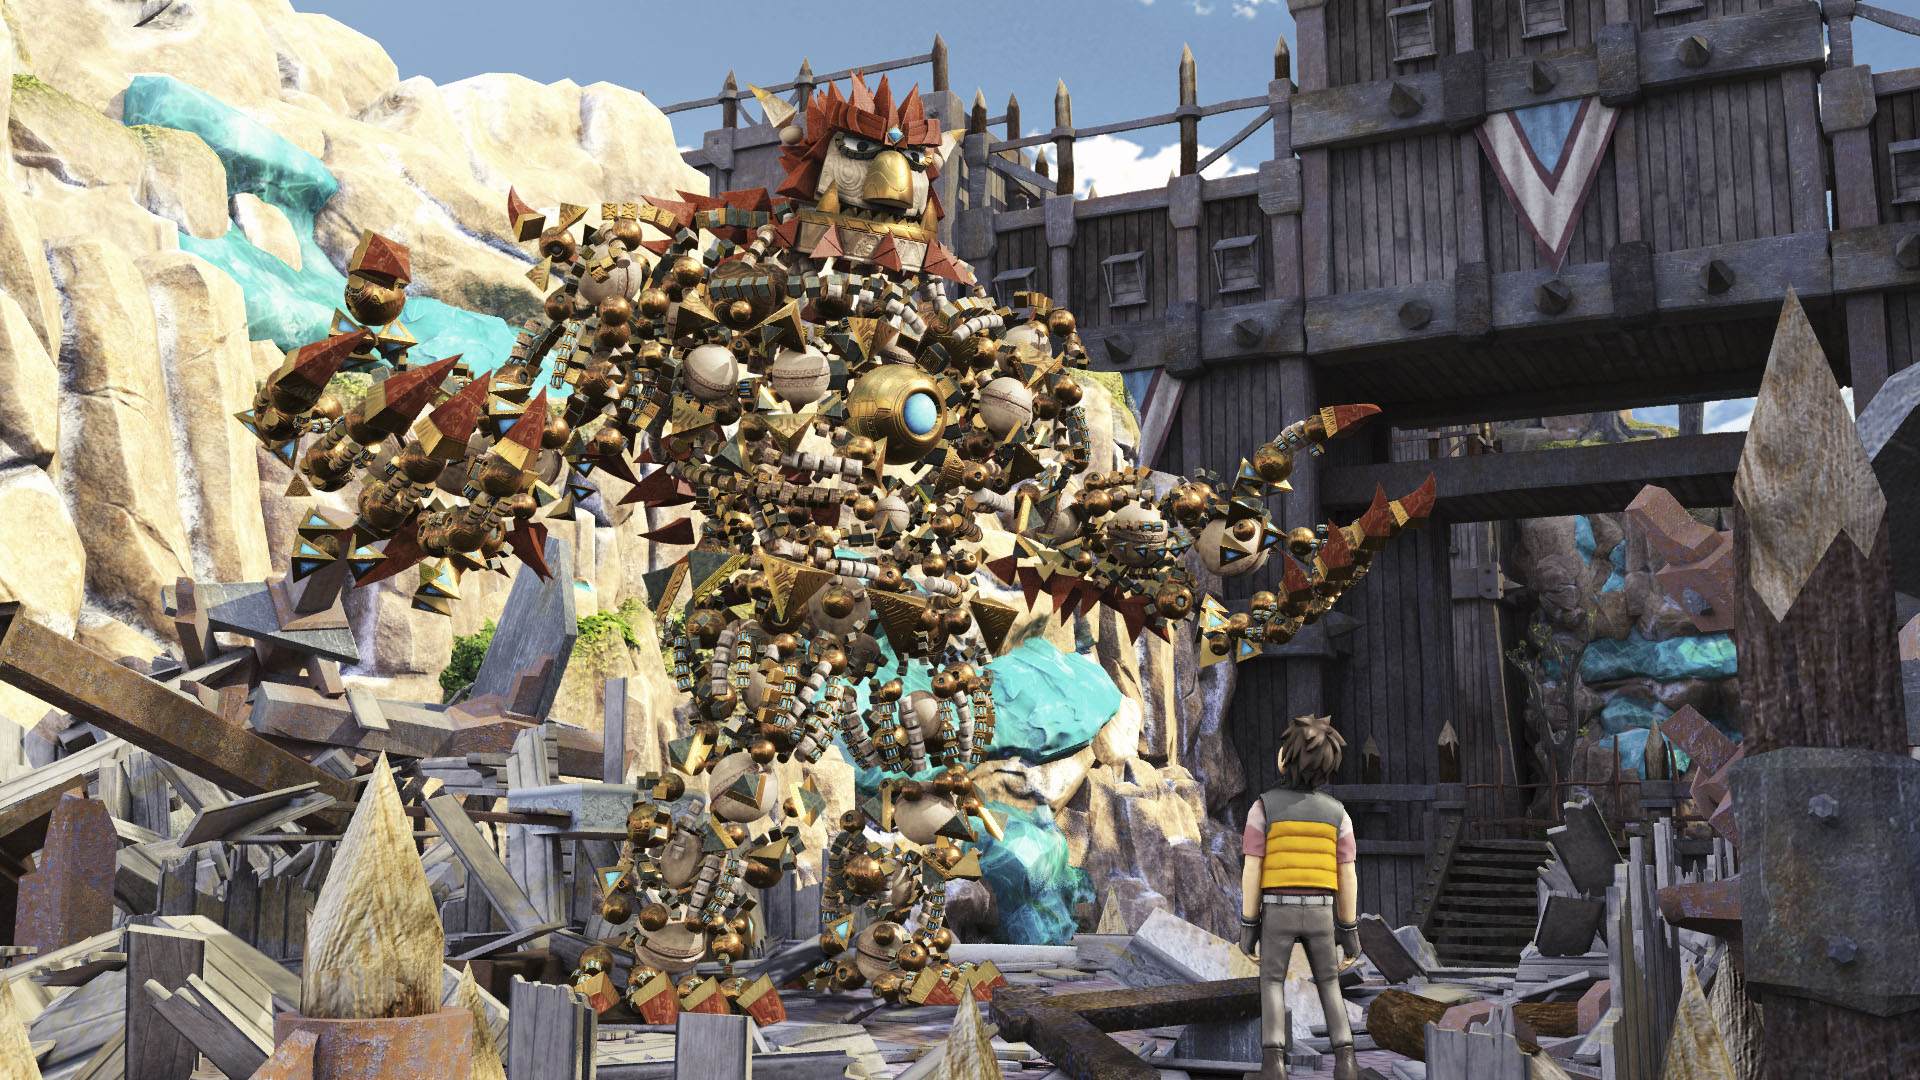 PlayStation 4 Knack SCE Japan Studios Sony is like PlayStation 1 classics PS1 Crash Bandicoot Spyro etc.